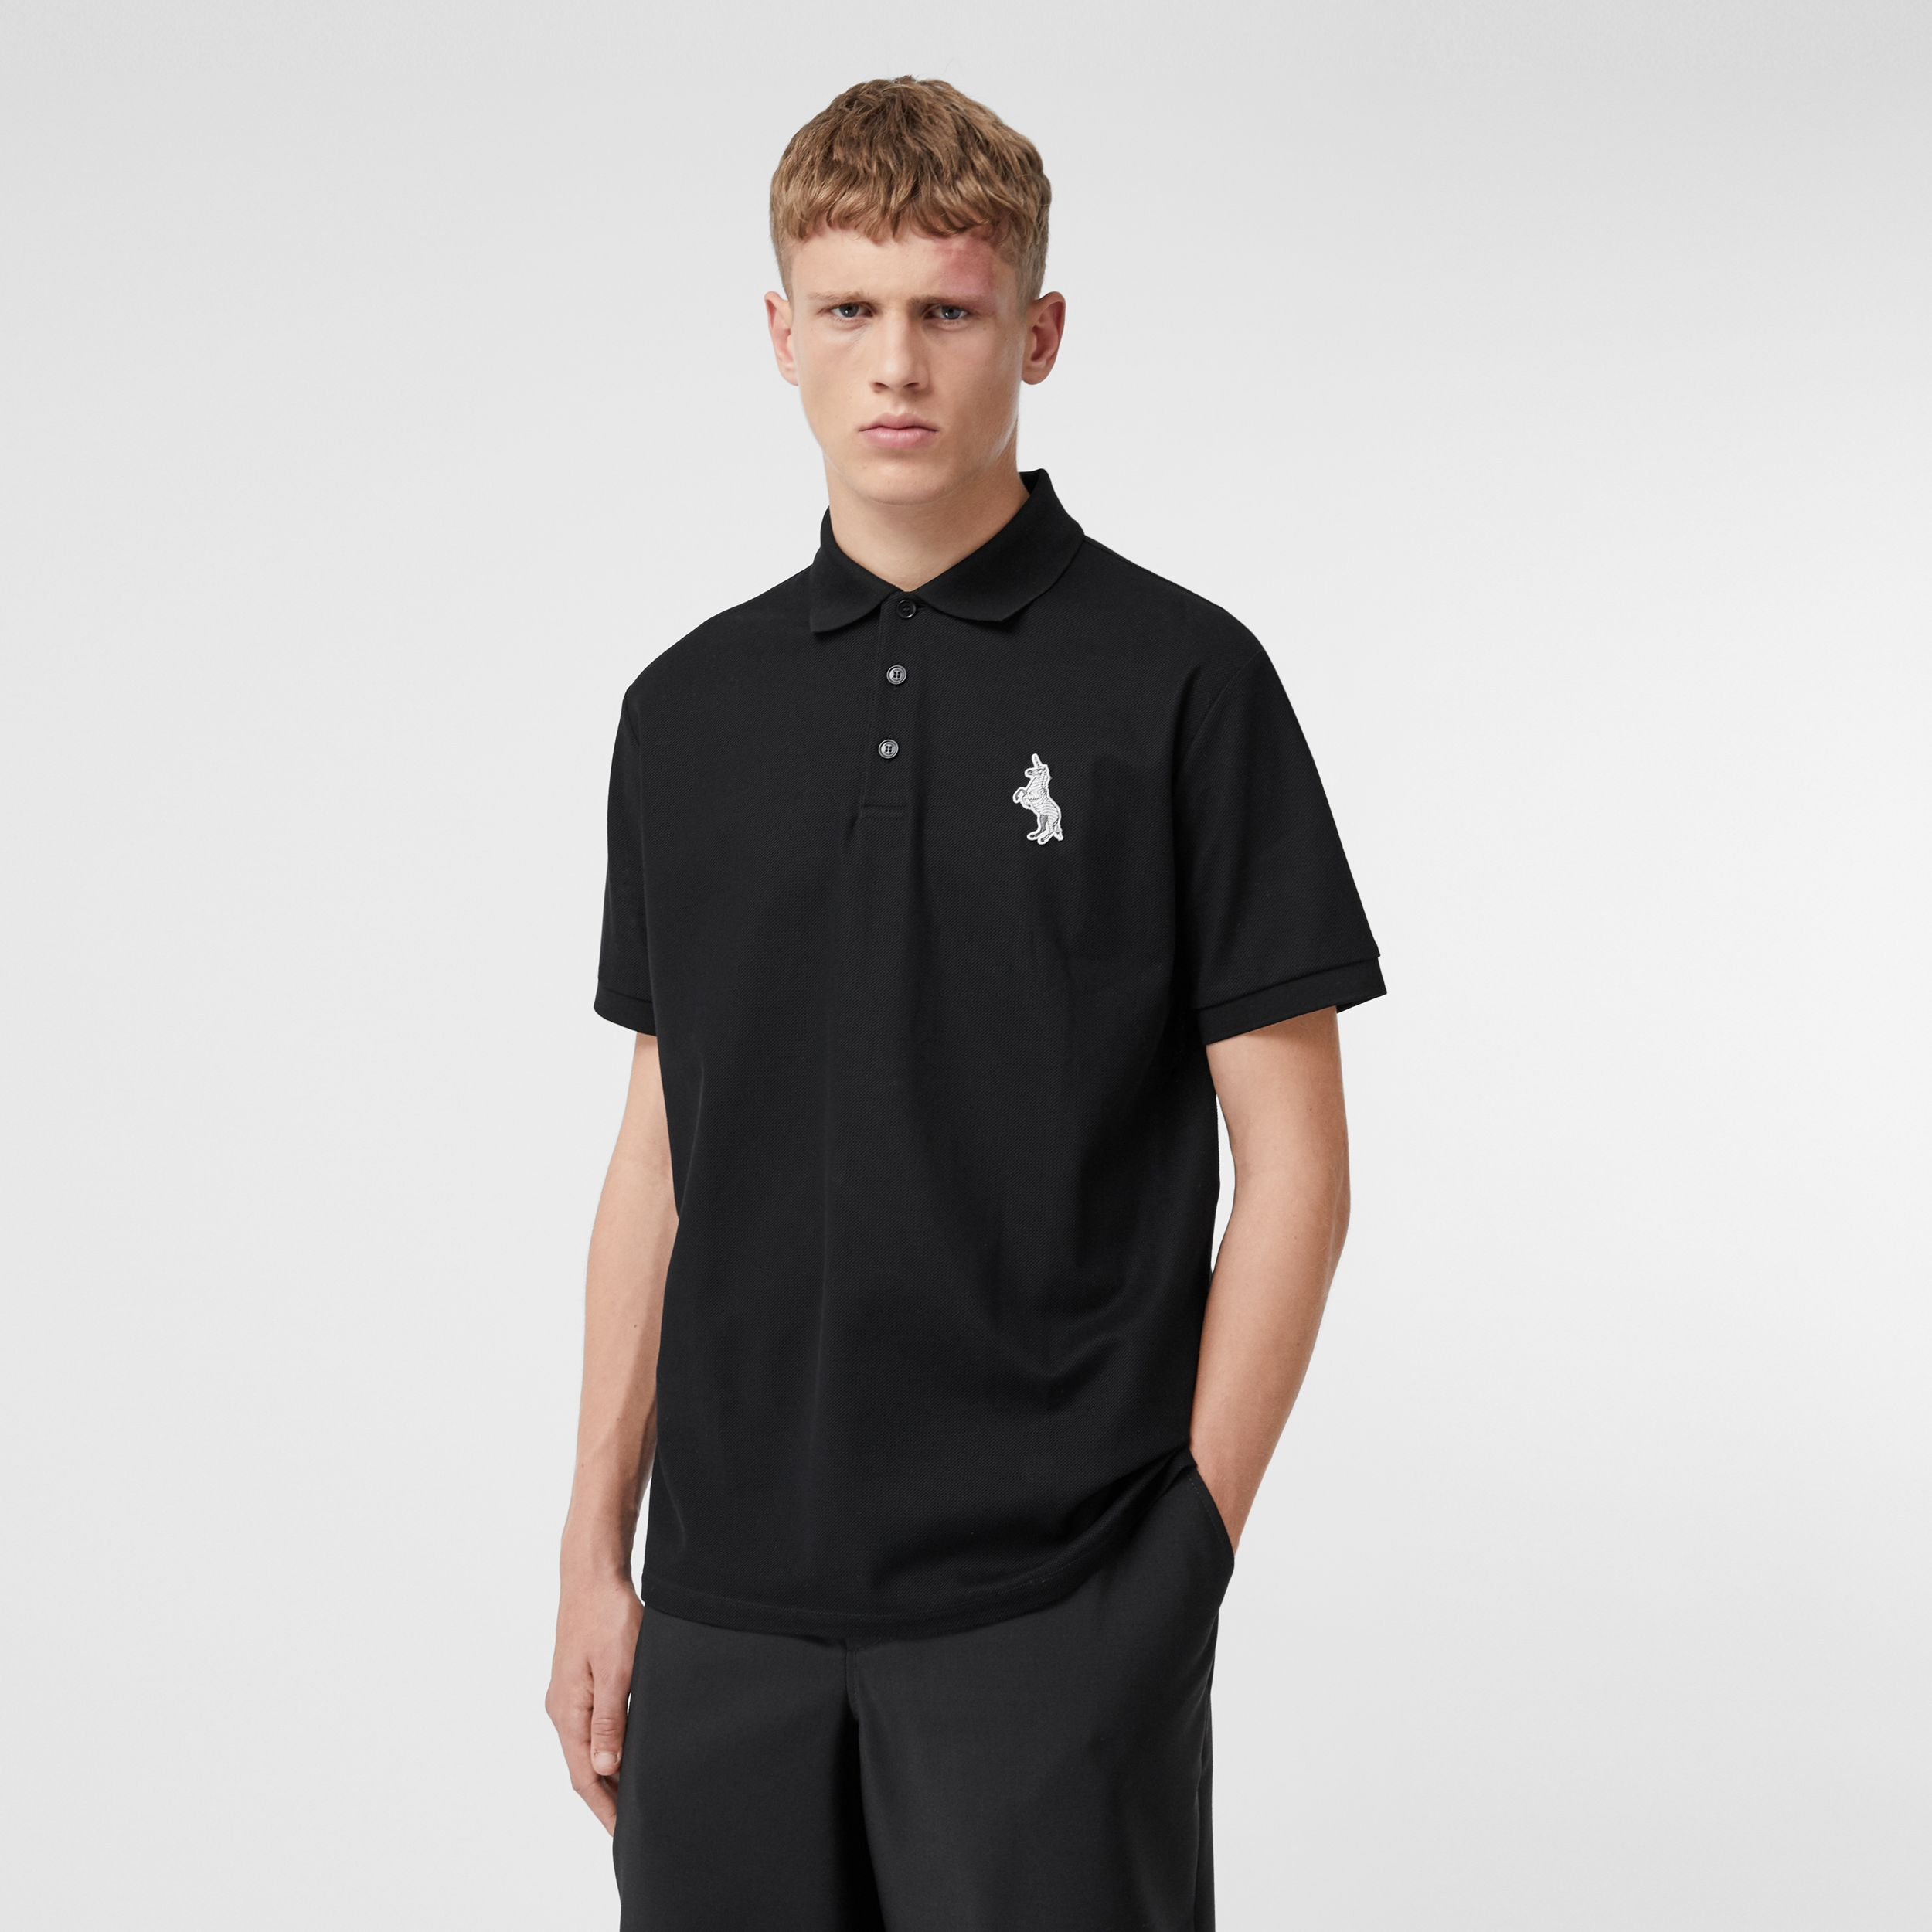 Zebra Appliqué Cotton Piqué Polo Shirt in Black - Men | Burberry - 1